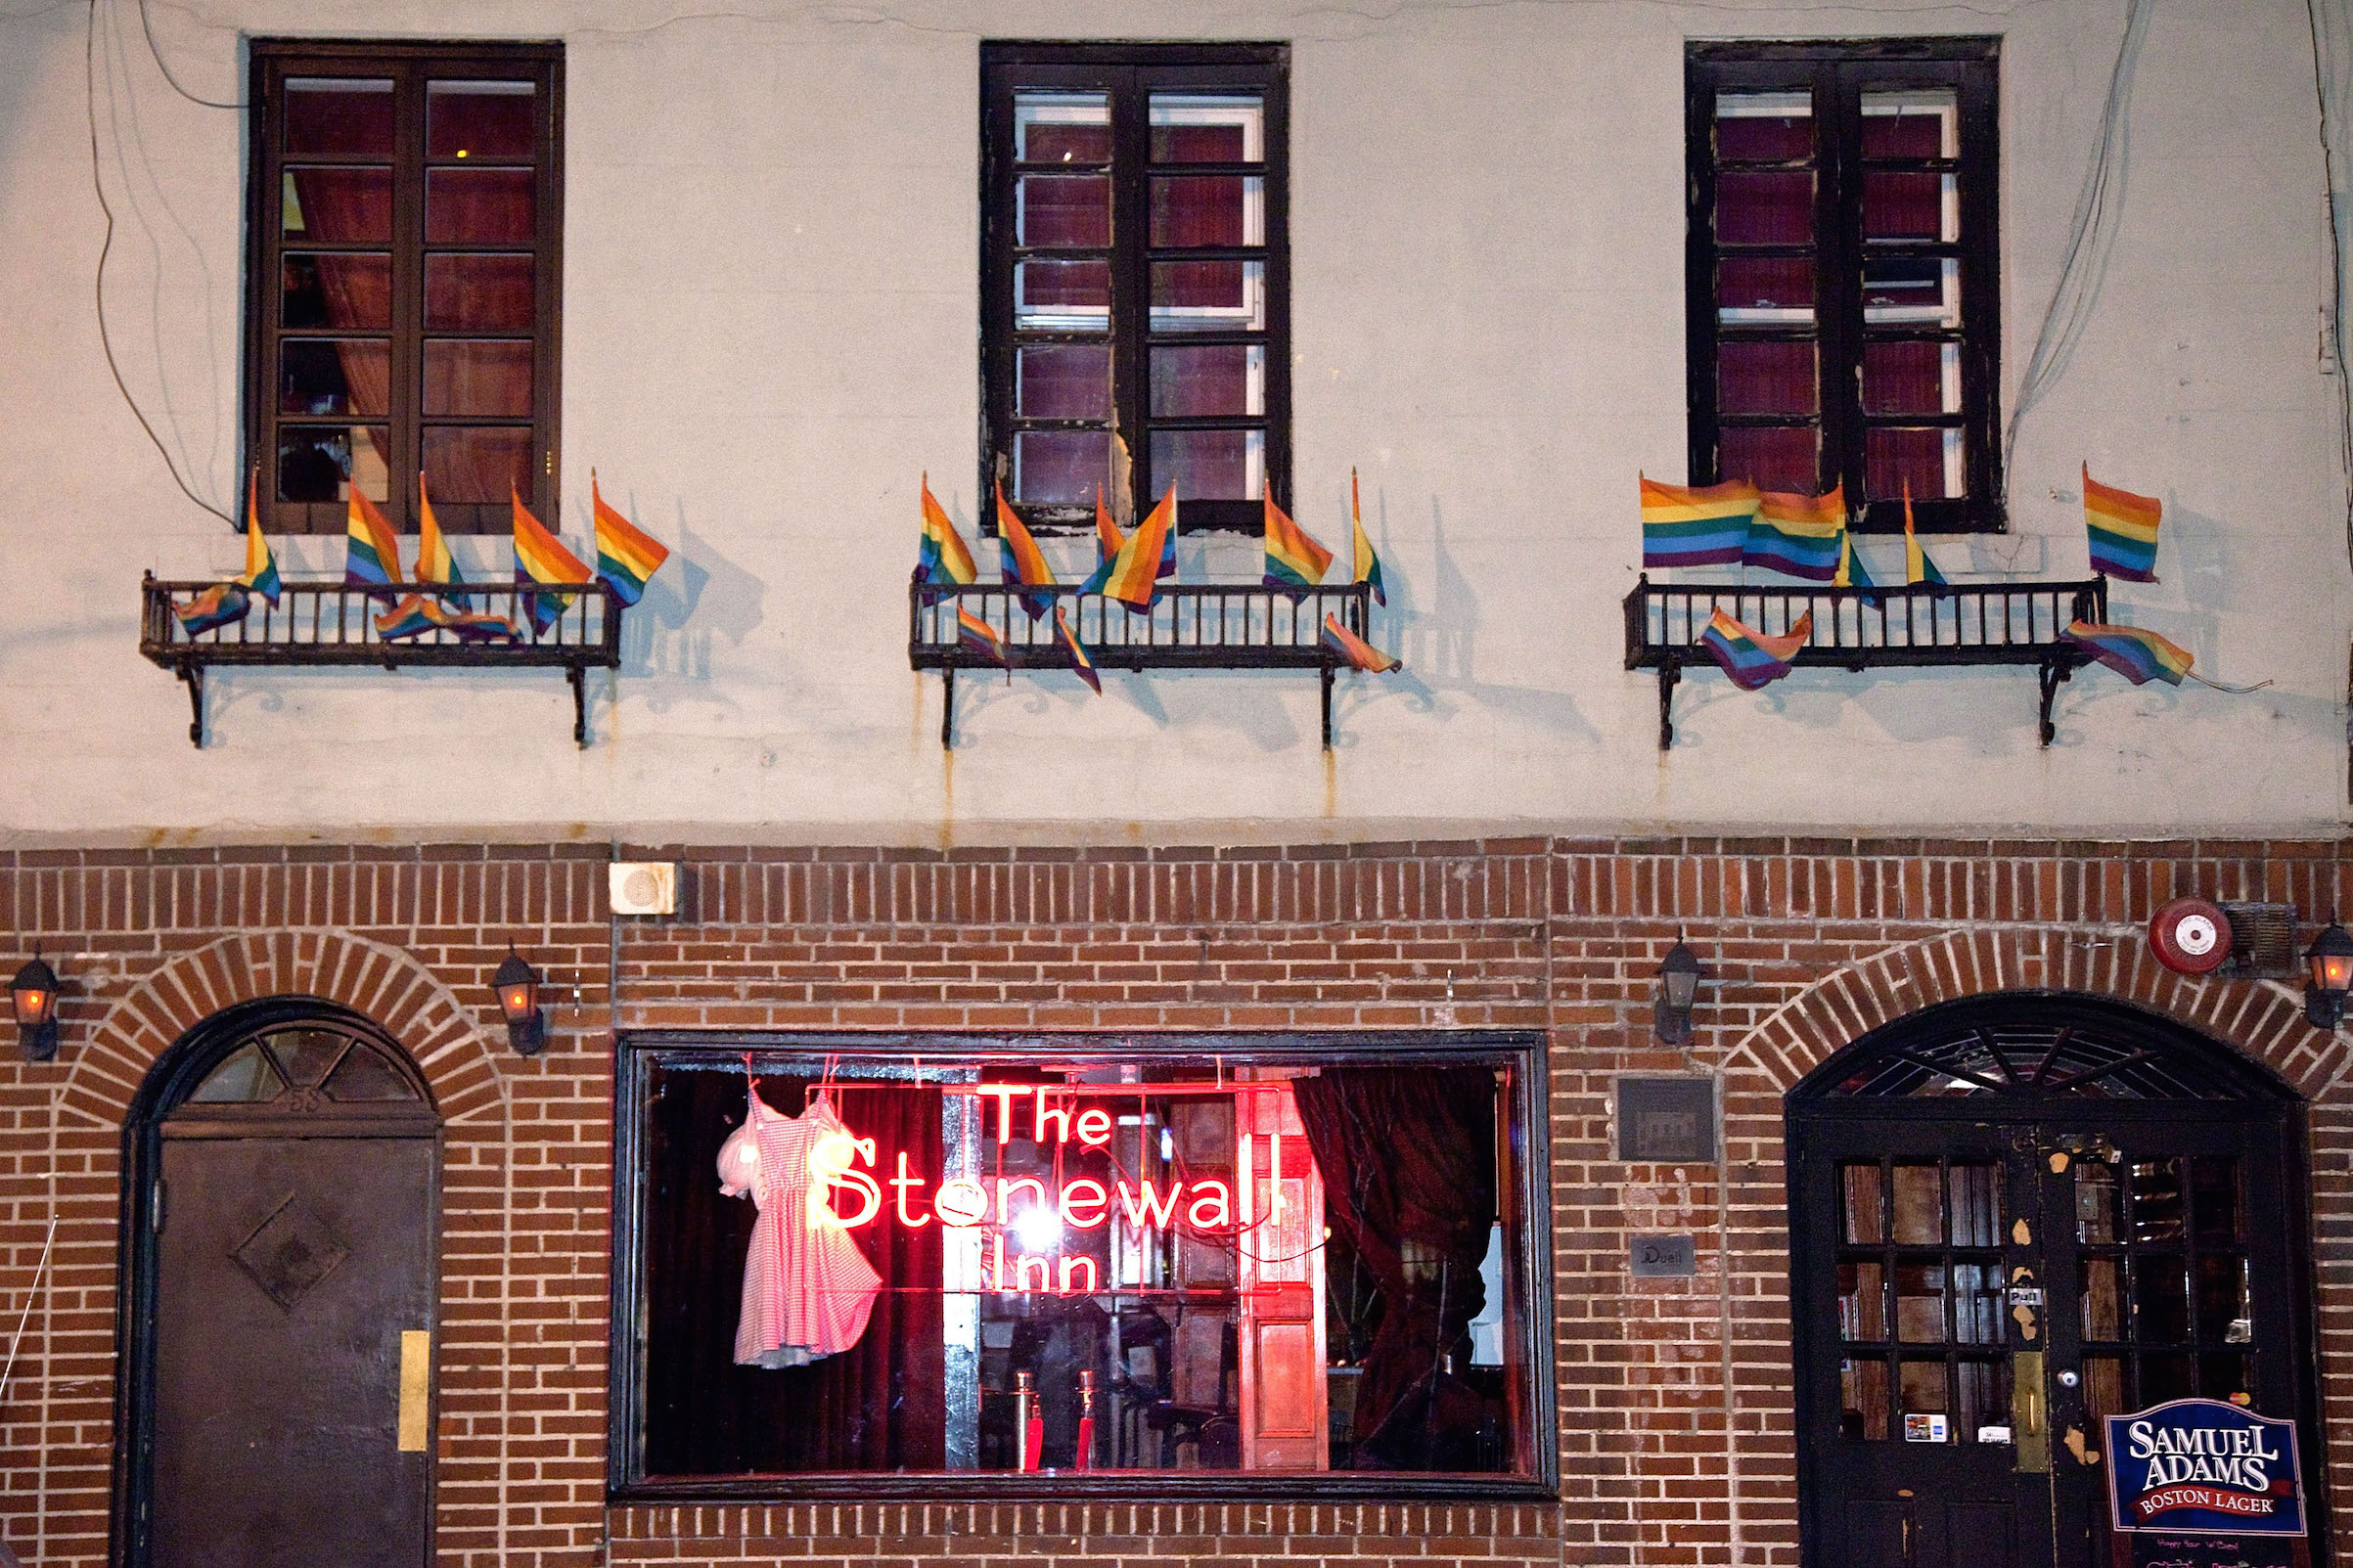 The Stonewall Inn in New York City, seen in 2011.